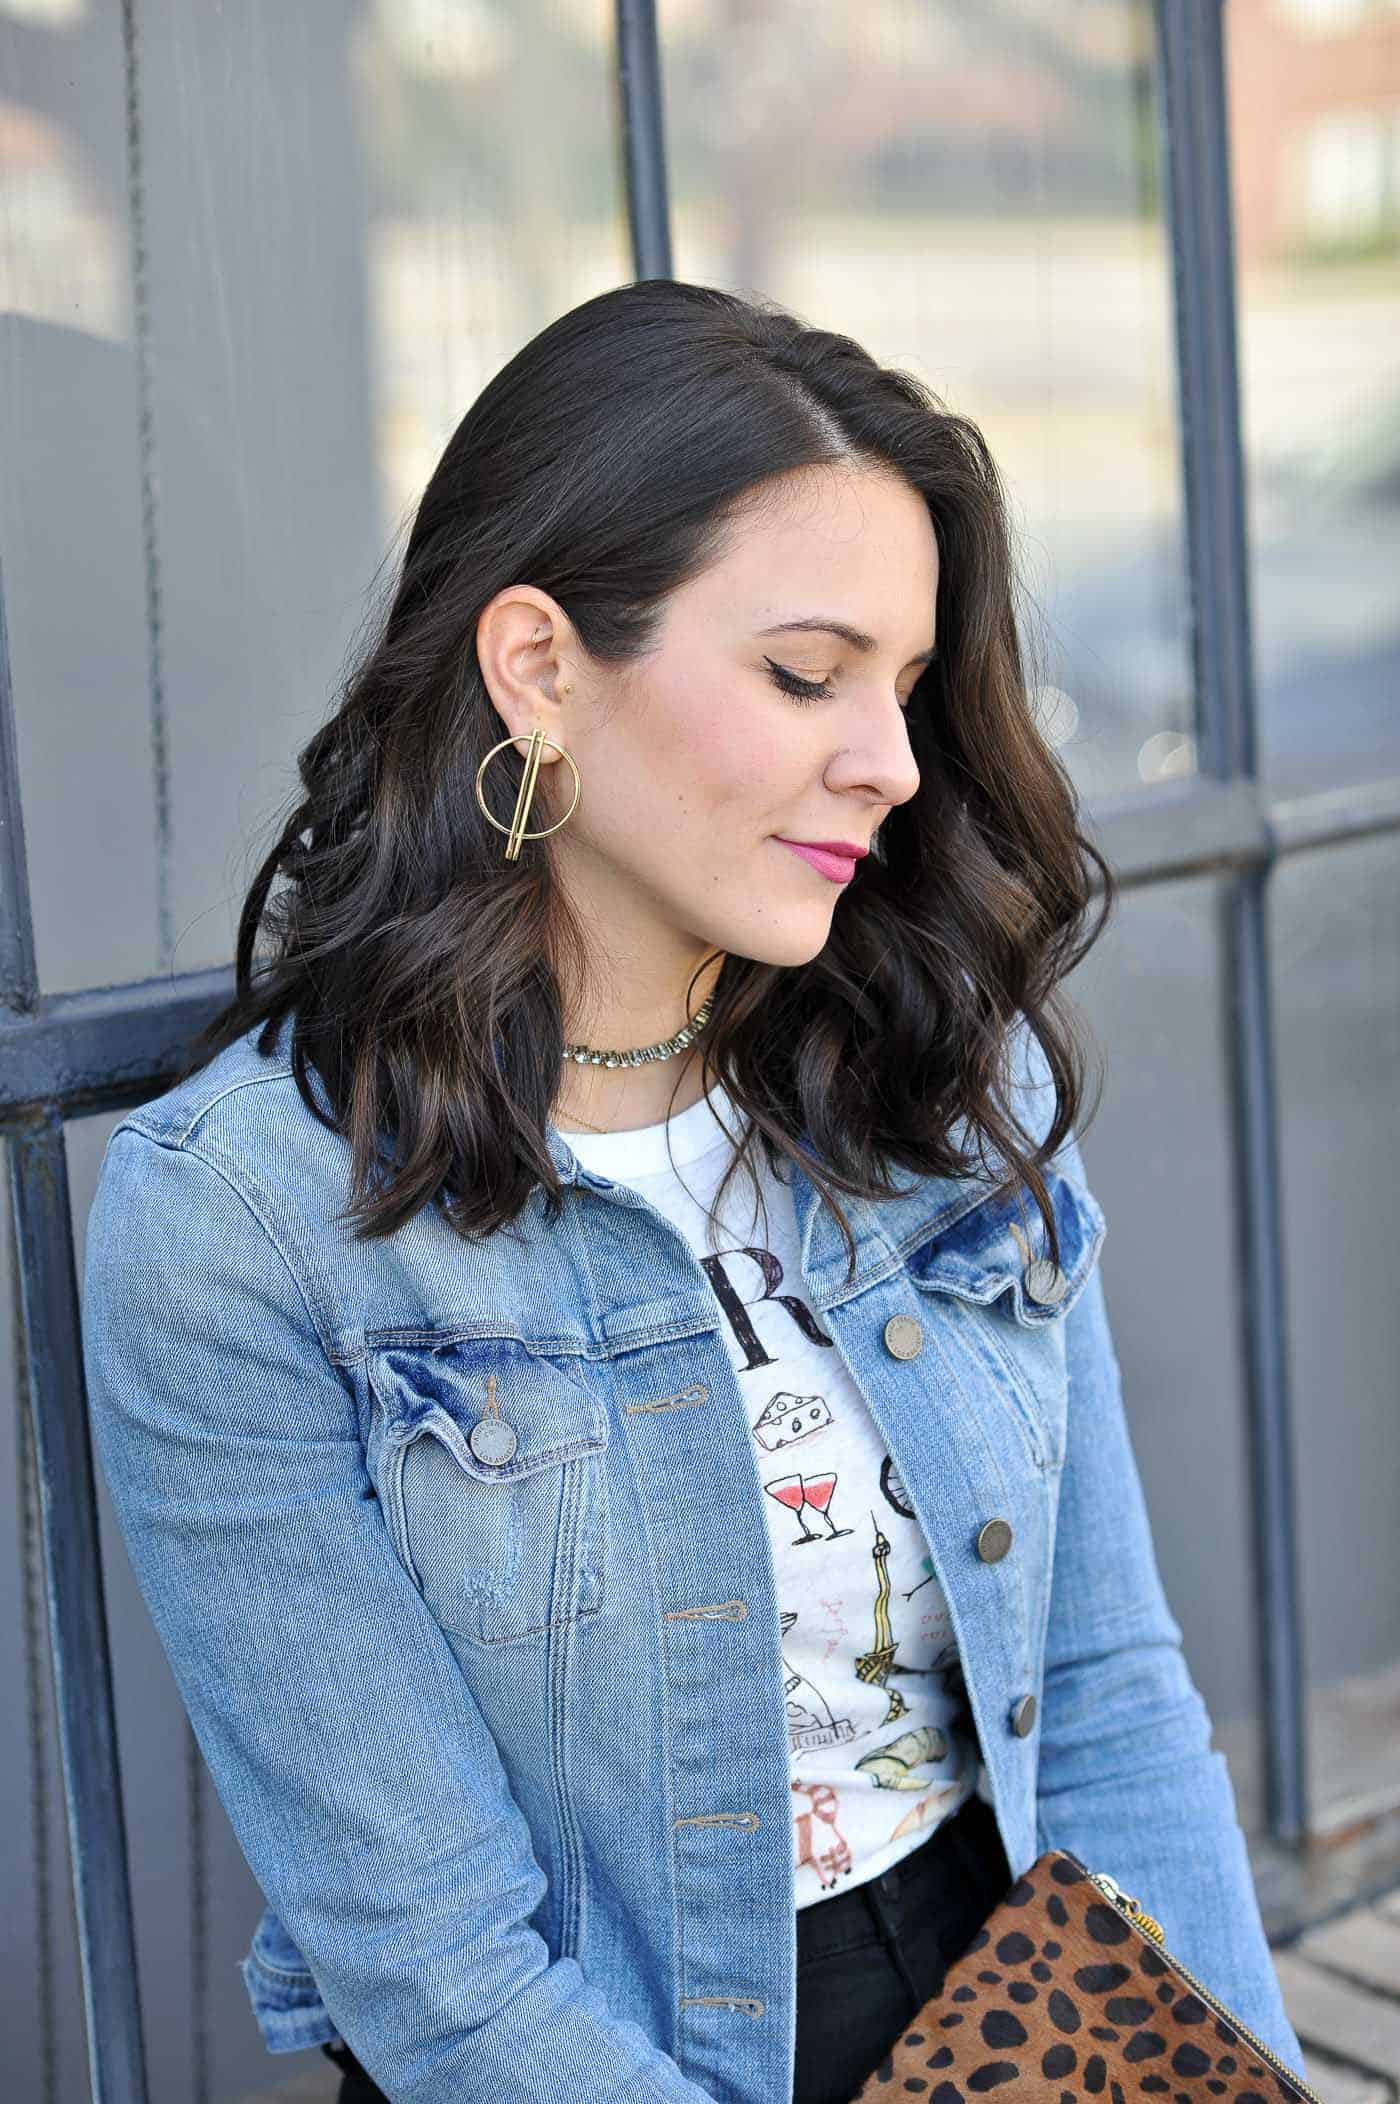 short hair and gold jewelry - My Style Vita @mystylevita